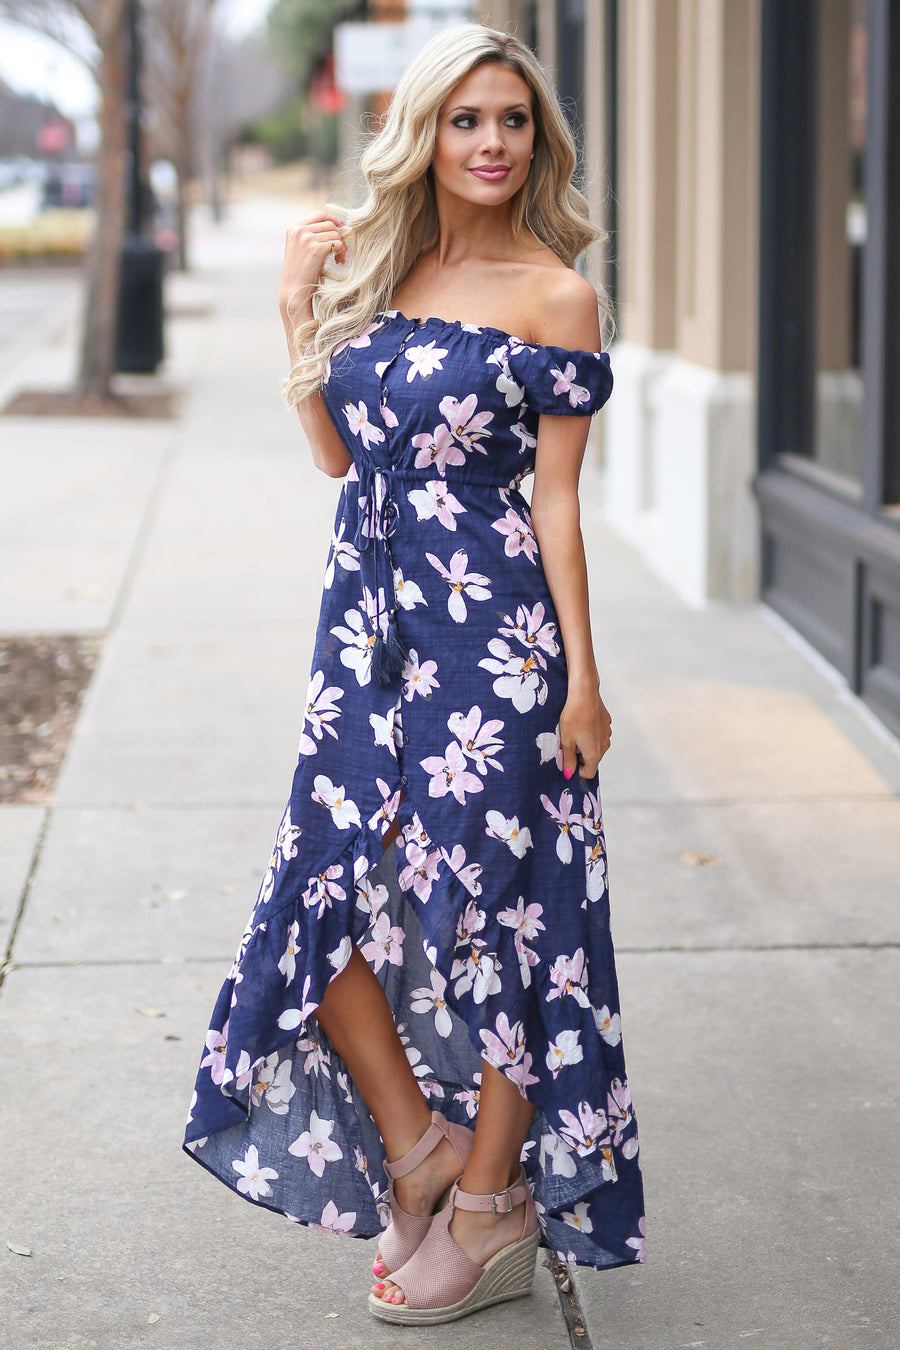 Tropical Paradise Maxi Dress - Navy off the shoulder floral high low dress, front, Closet Candy Boutique